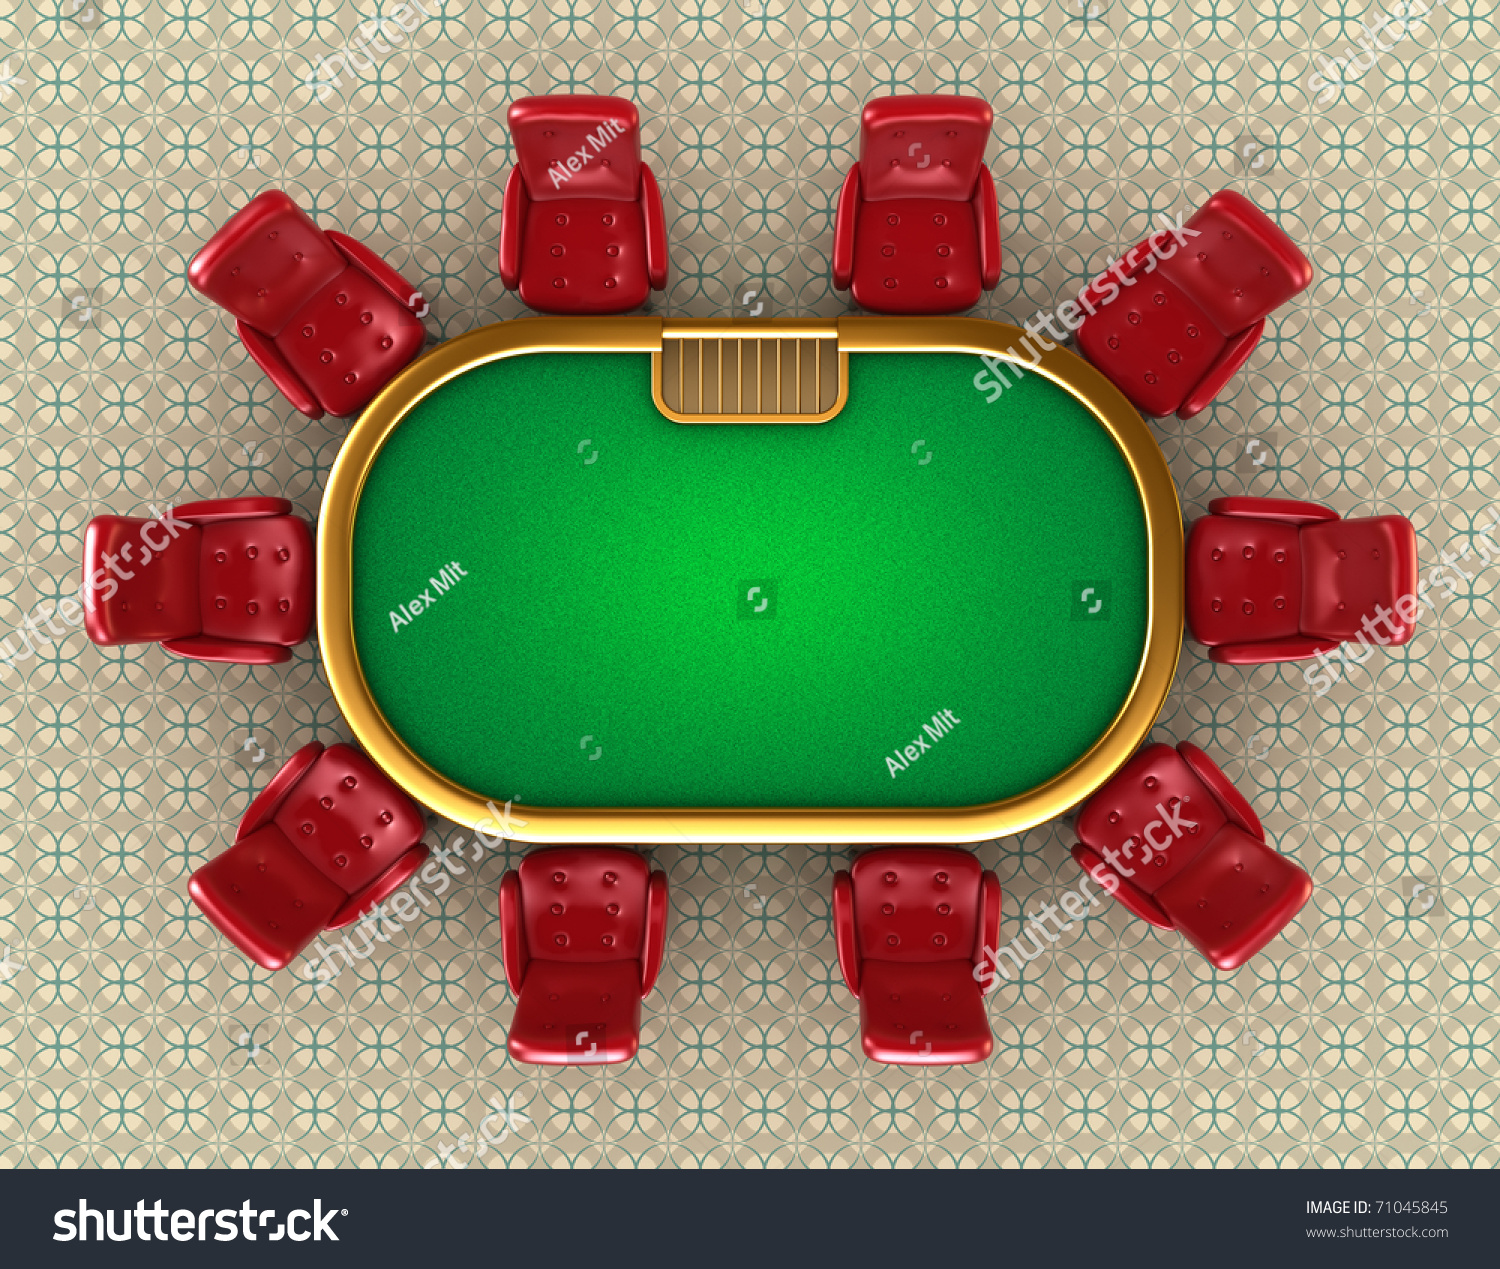 Poker table with chairs top view stock photo 71045845 shutterstock